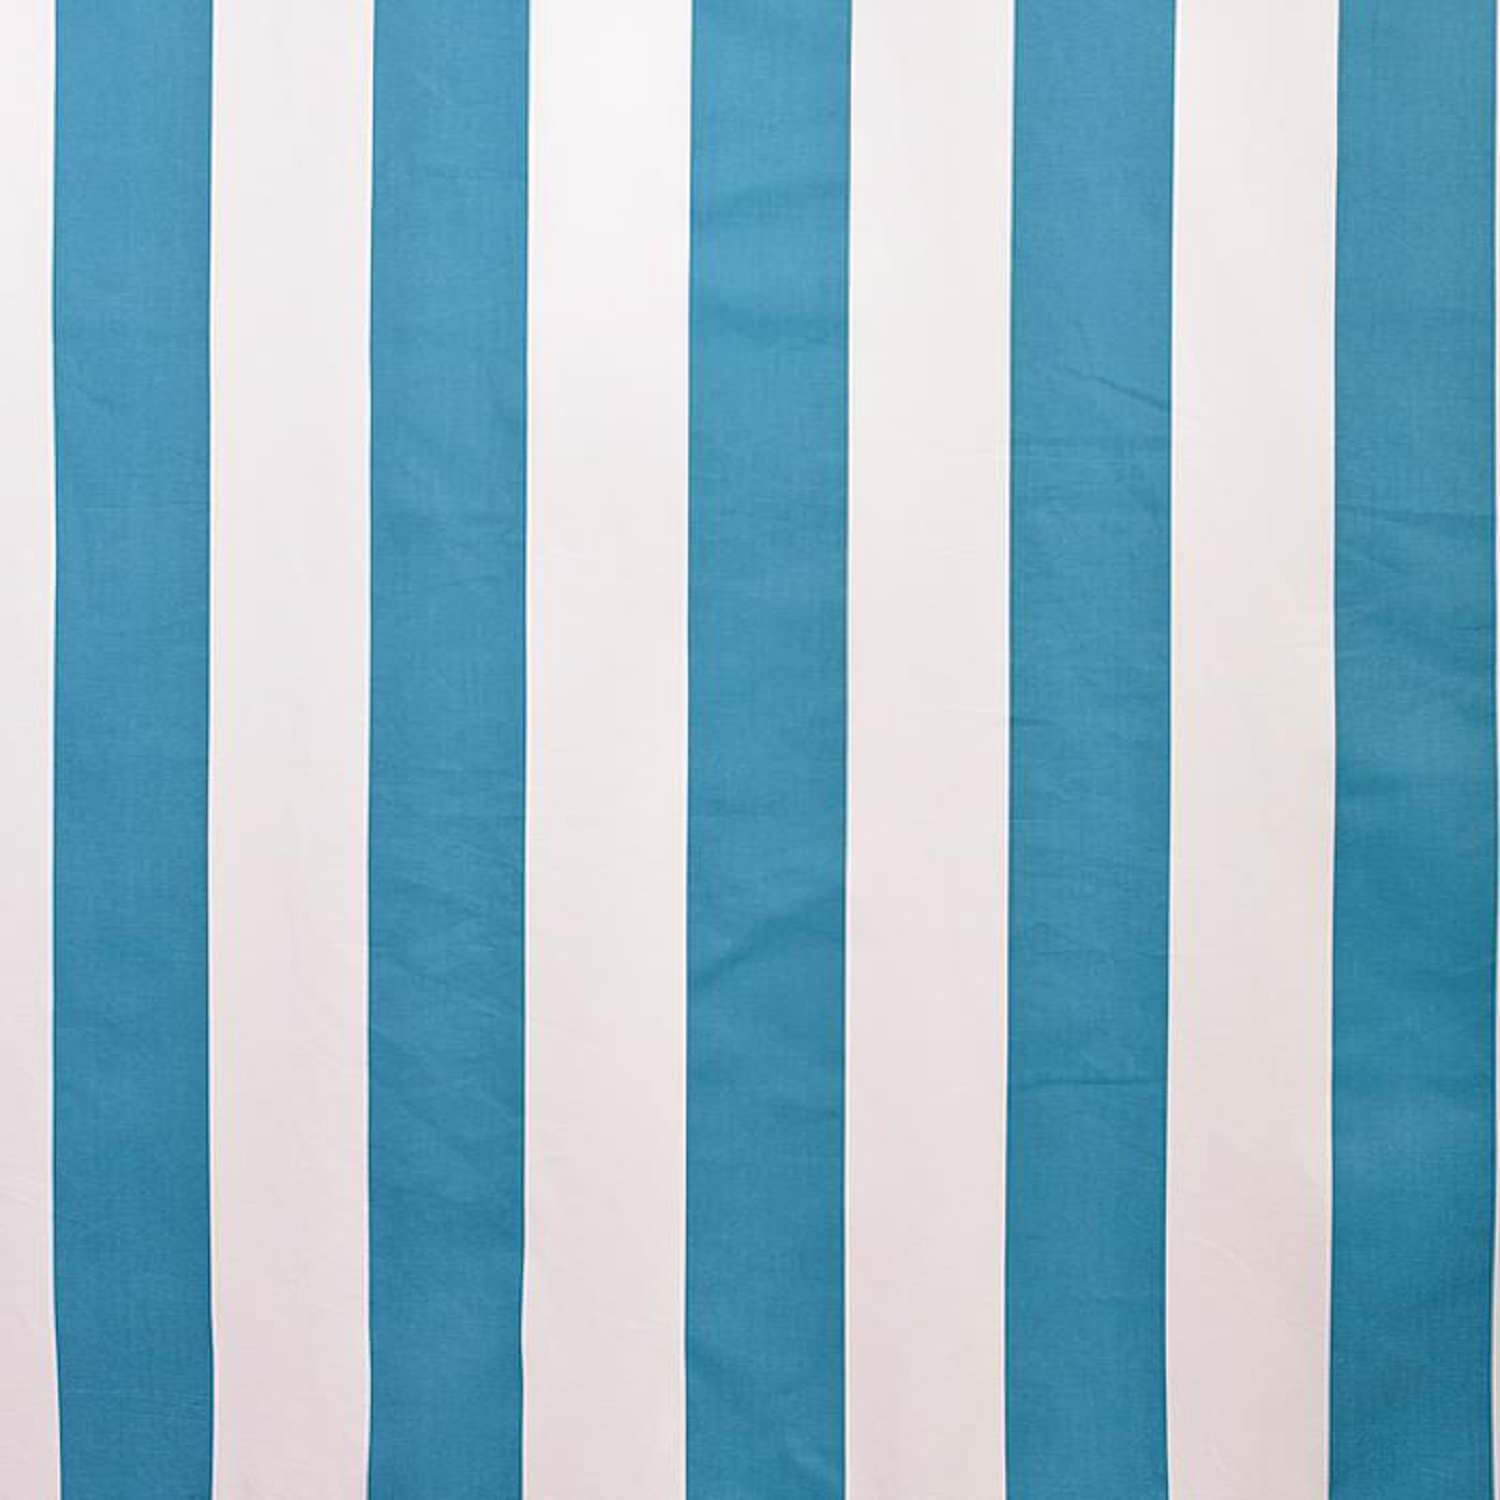 Cabana Teal Printed Cotton Swatch